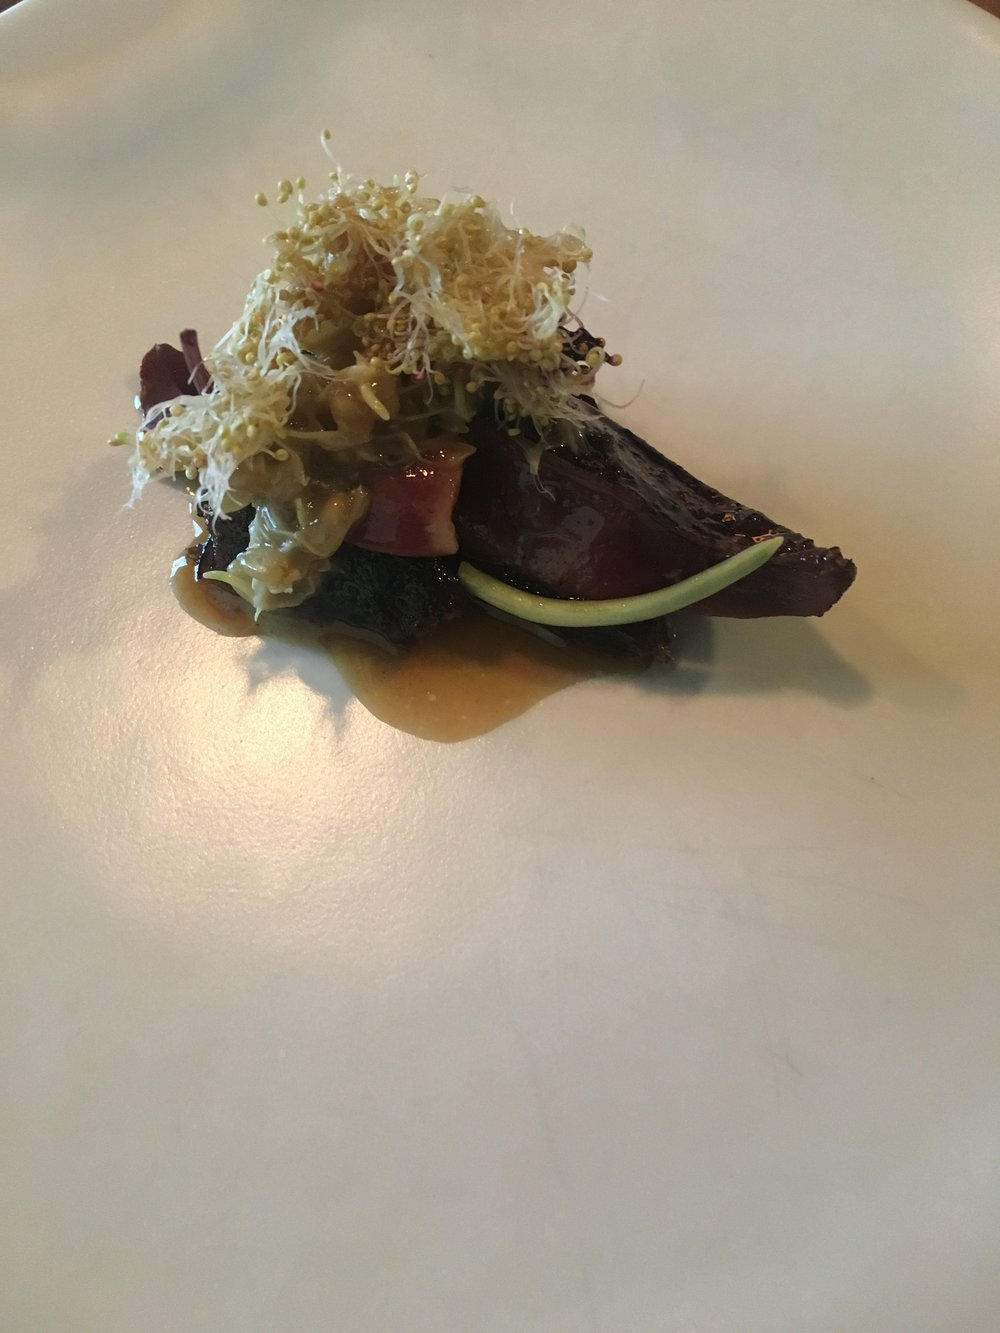 Roast squab, black walnut, sprouted grains, and black currant